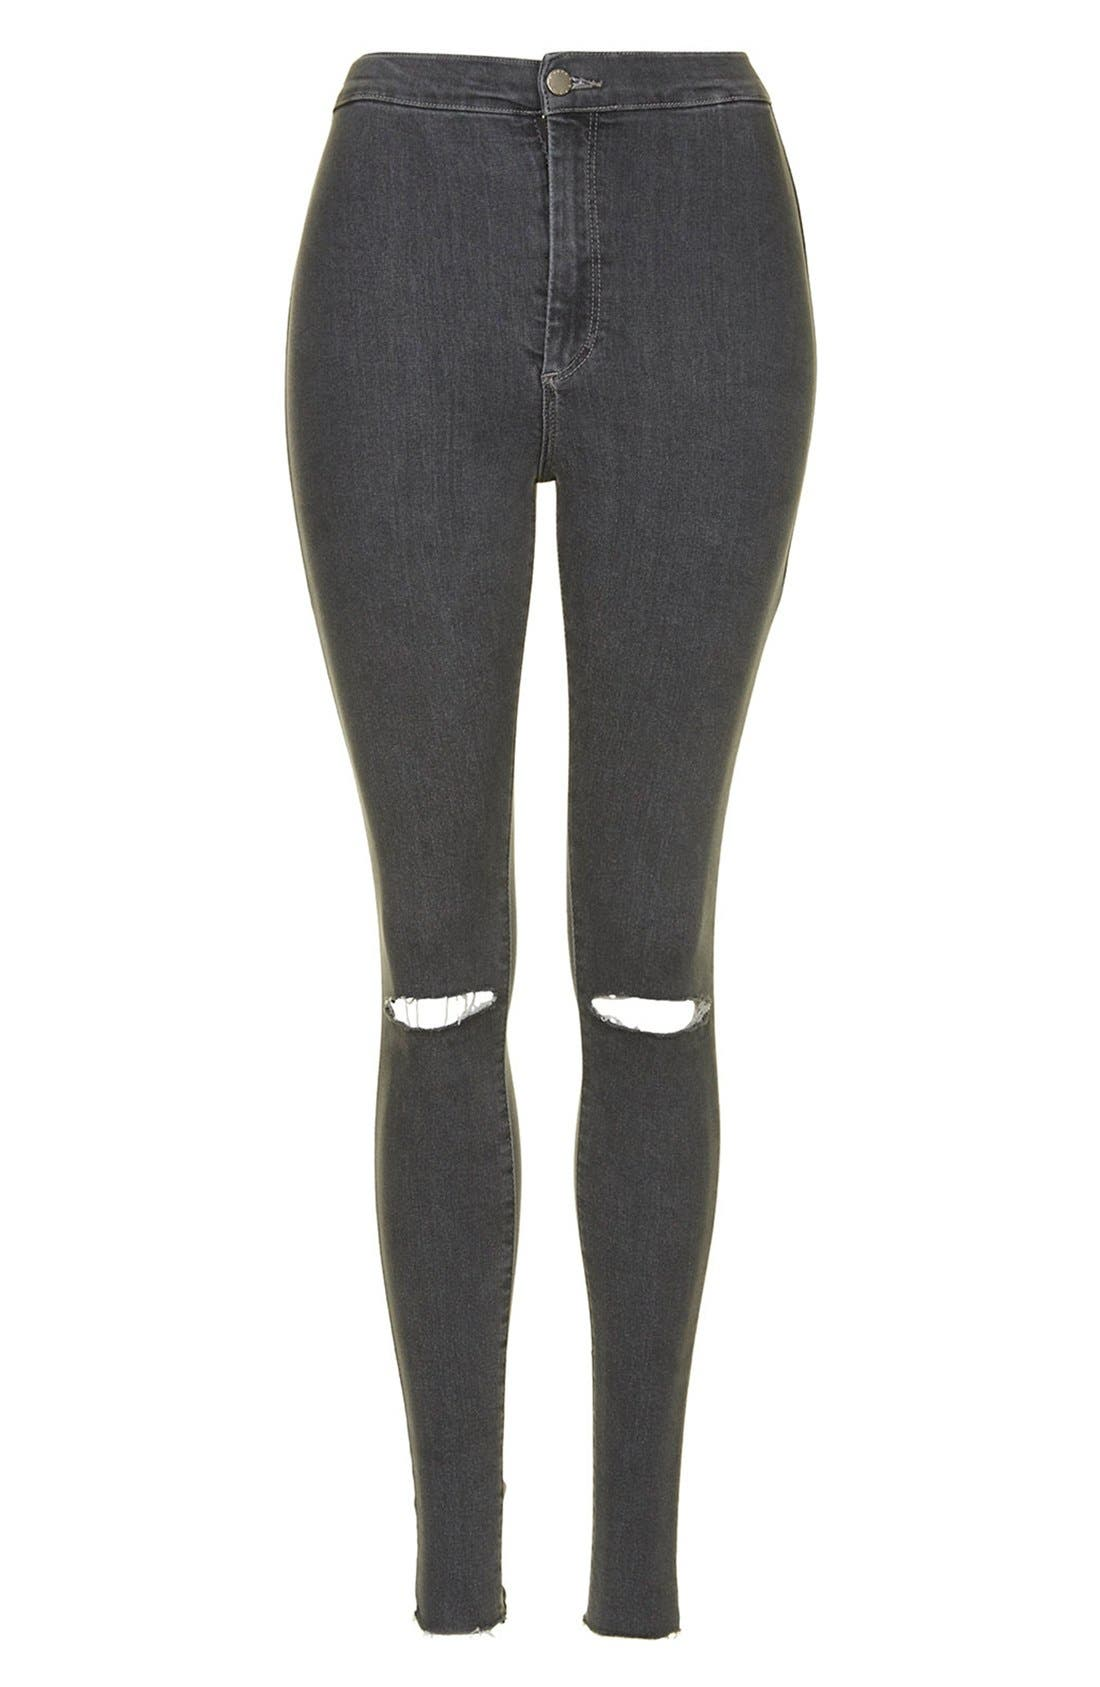 Alternate Image 3  - Topshop Moto 'Joni' Ripped Skinny Jeans (Grey) Regular and Short